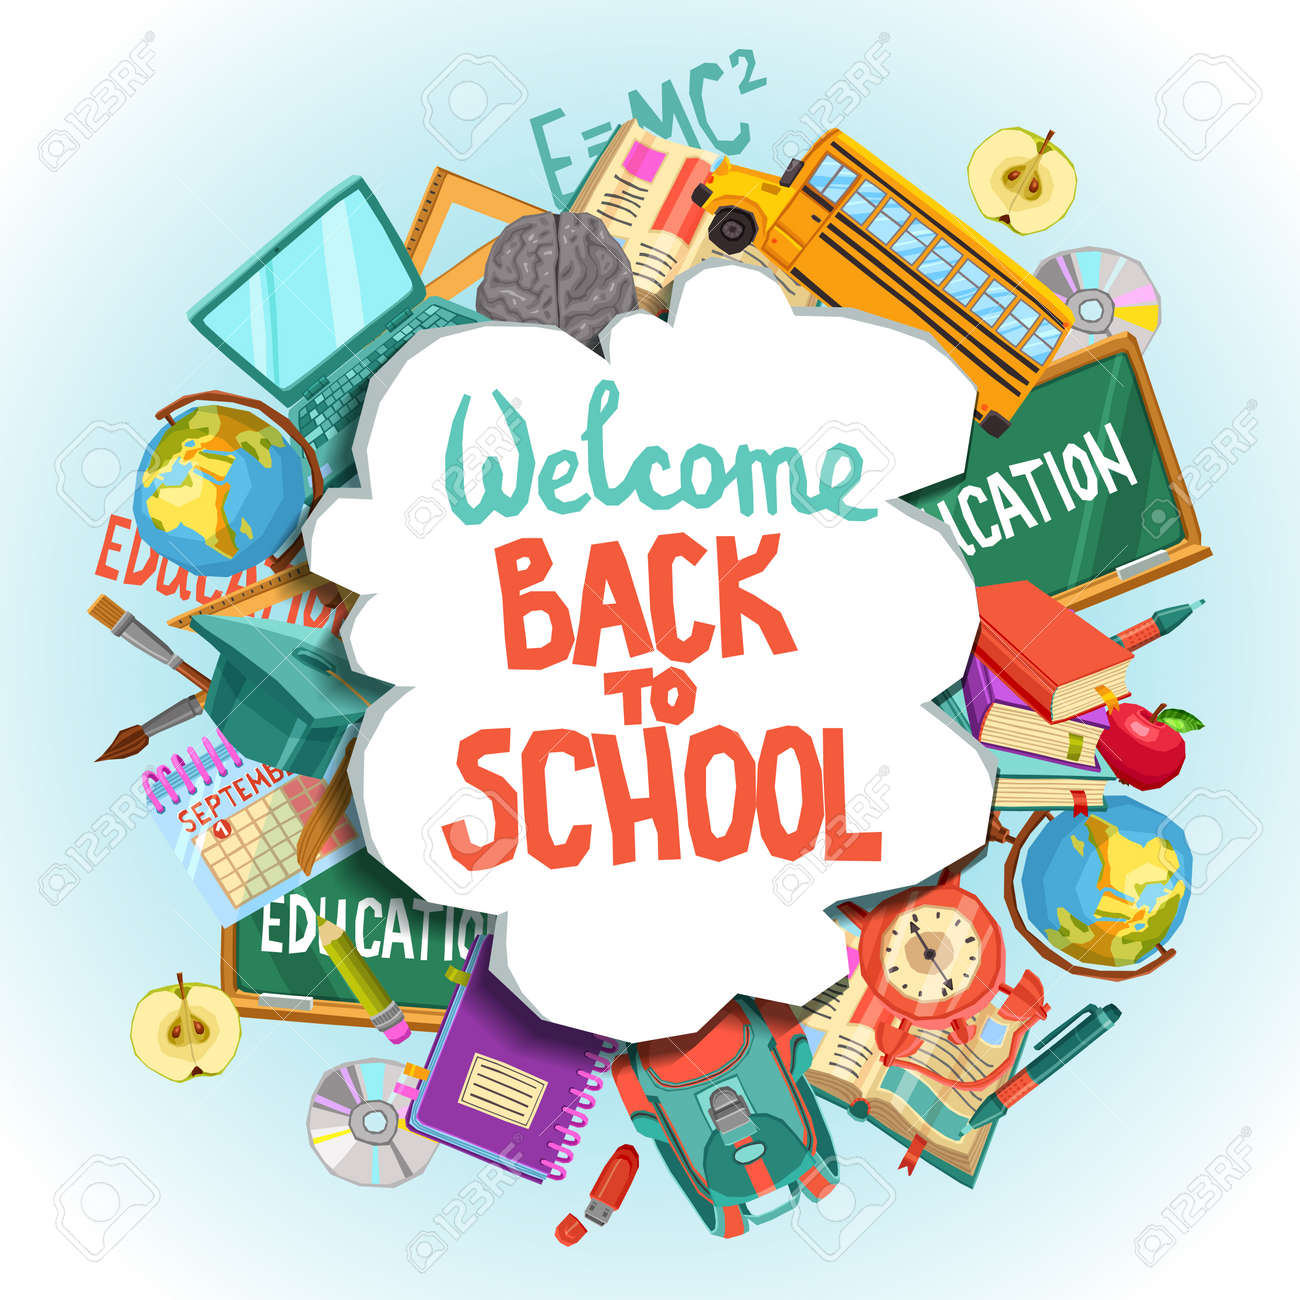 welcome back to school poster royalty free cliparts, vectors, and